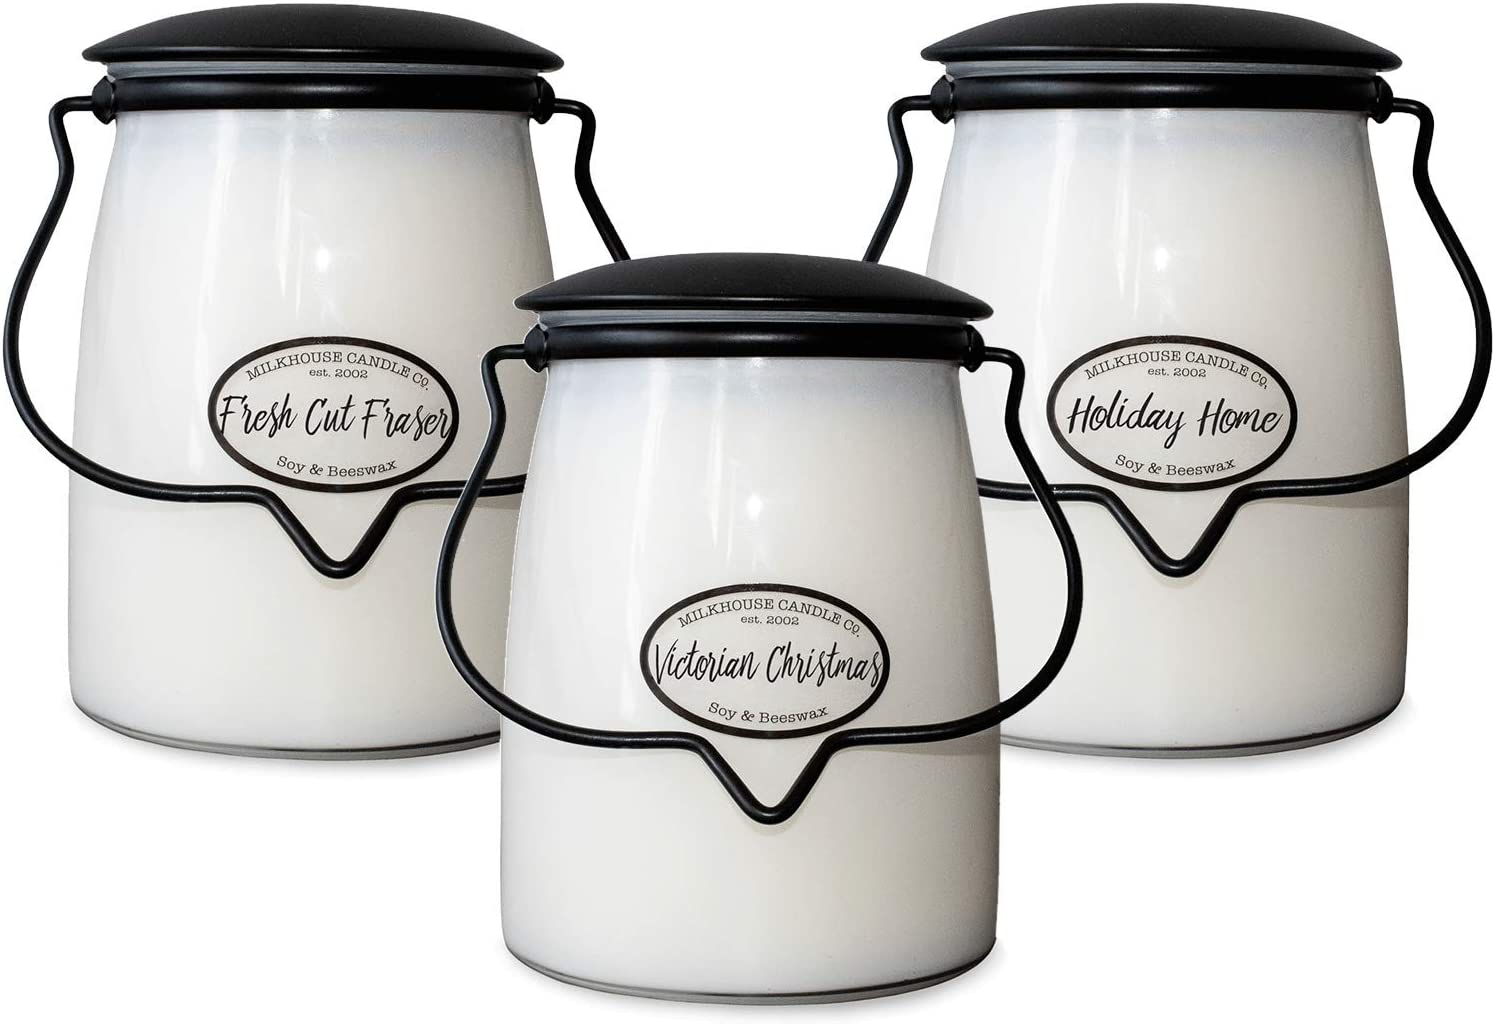 Milkhouse Candle Company Christmas 3-Pack Butter Jar Candles   Fresh Cut Fraser, Holiday Home, Victorian Christmas   22oz Glass Jar Scented Candles for The Home   Hostess Gift   Soy Candles